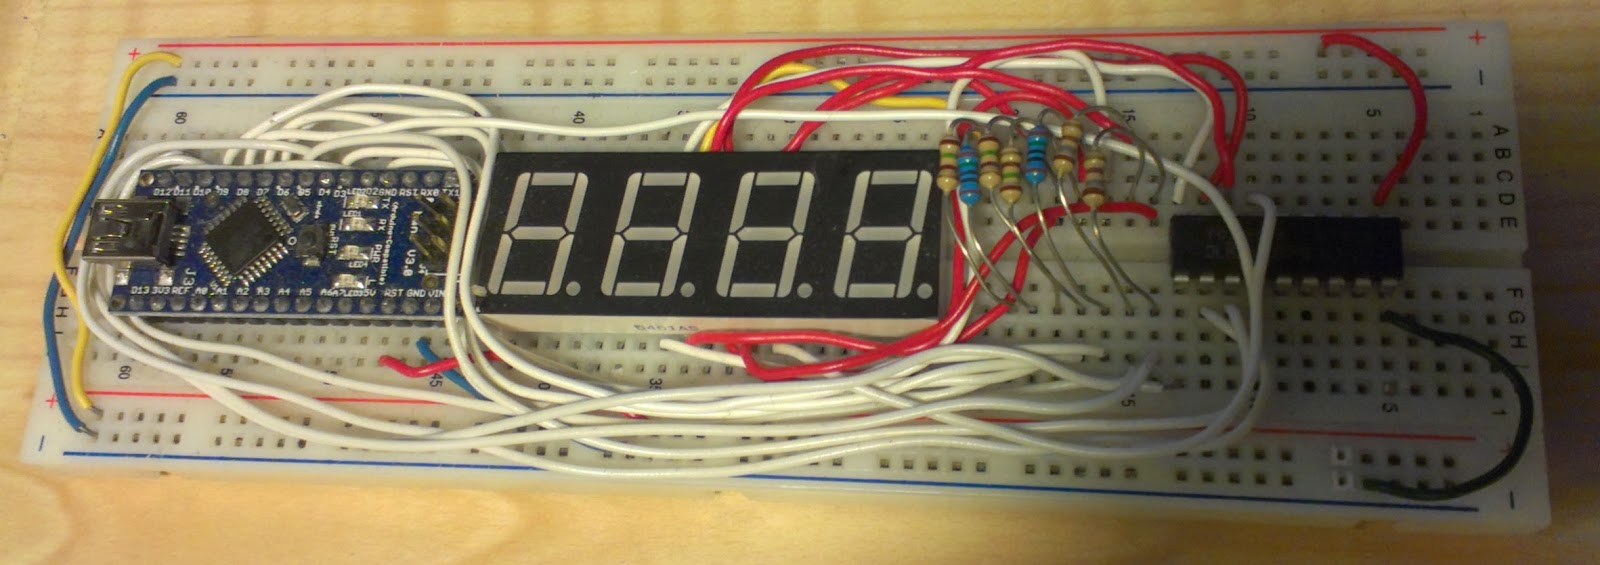 Arduino Controlled Dual Axis Solar together with Arduino Automotive Tachometer Wiring Ignition Coil Wiring Diagrams also Index as well An Arduino Diy Tachometer Display in addition BP2CbGS2Nsg. on arduino inductive spark plug sensor